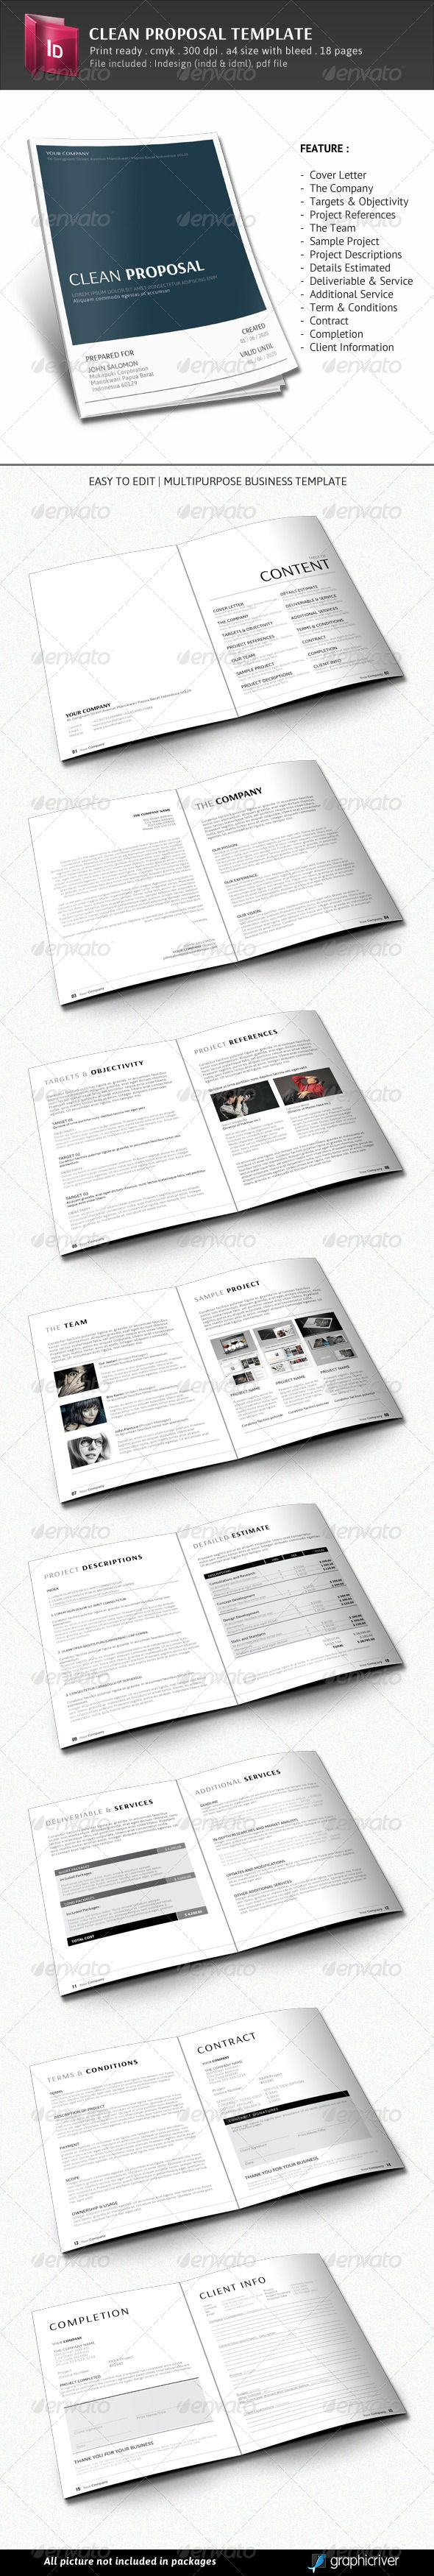 Commercial Proposal Format Simple 226 Best Proposal & Invoice Templates Images On Pinterest